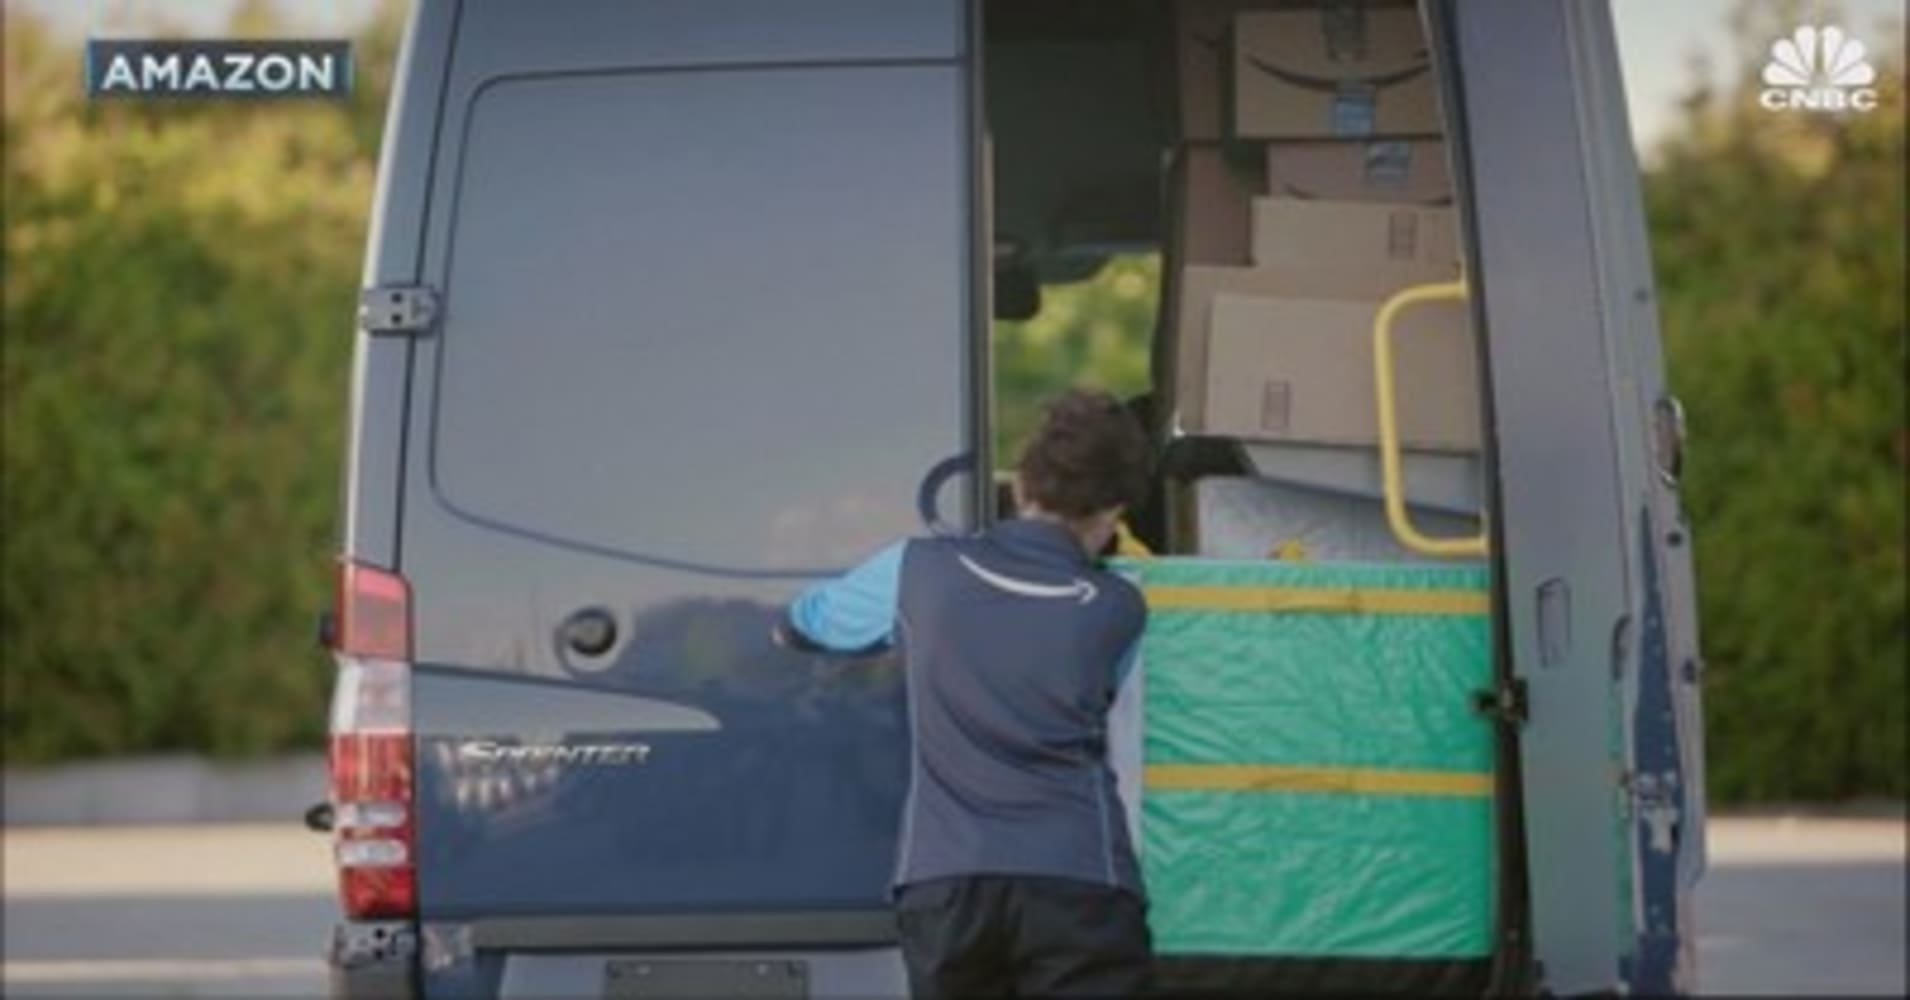 Amazon reveals new way to deliver more packages